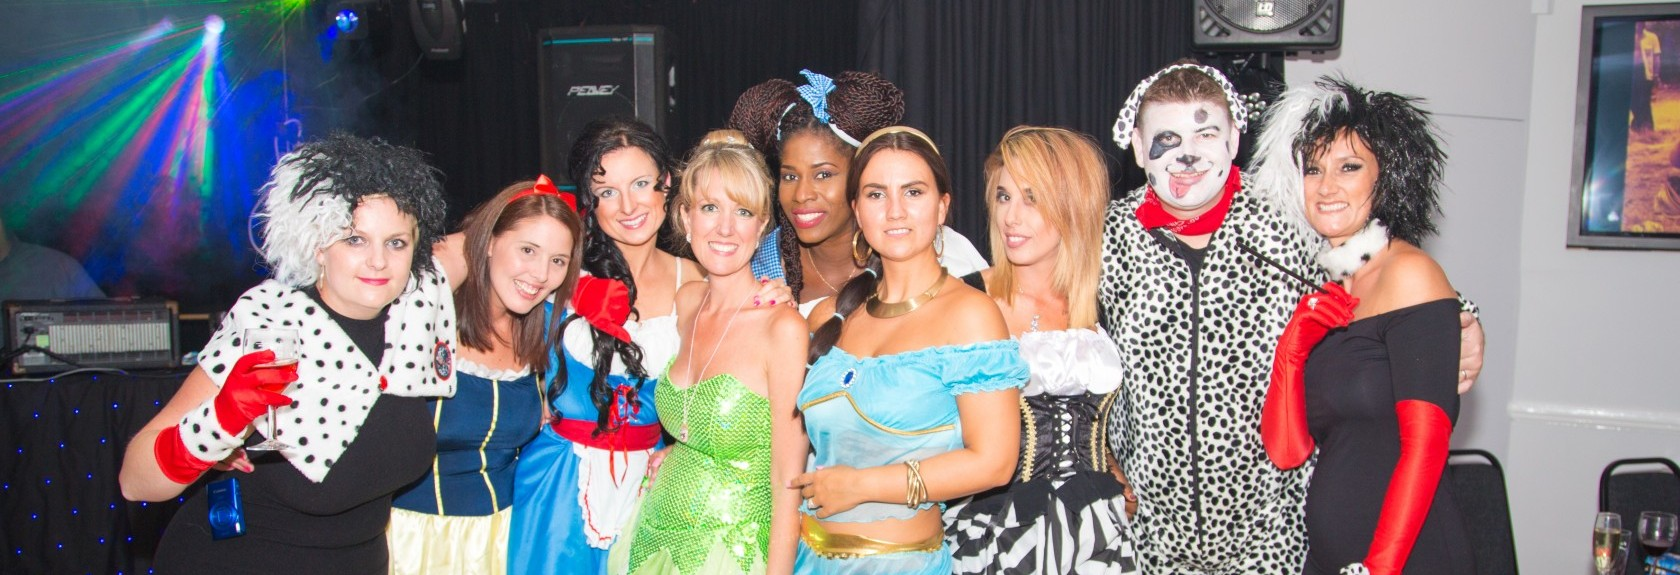 40th birthday, Fancy dress, party photography